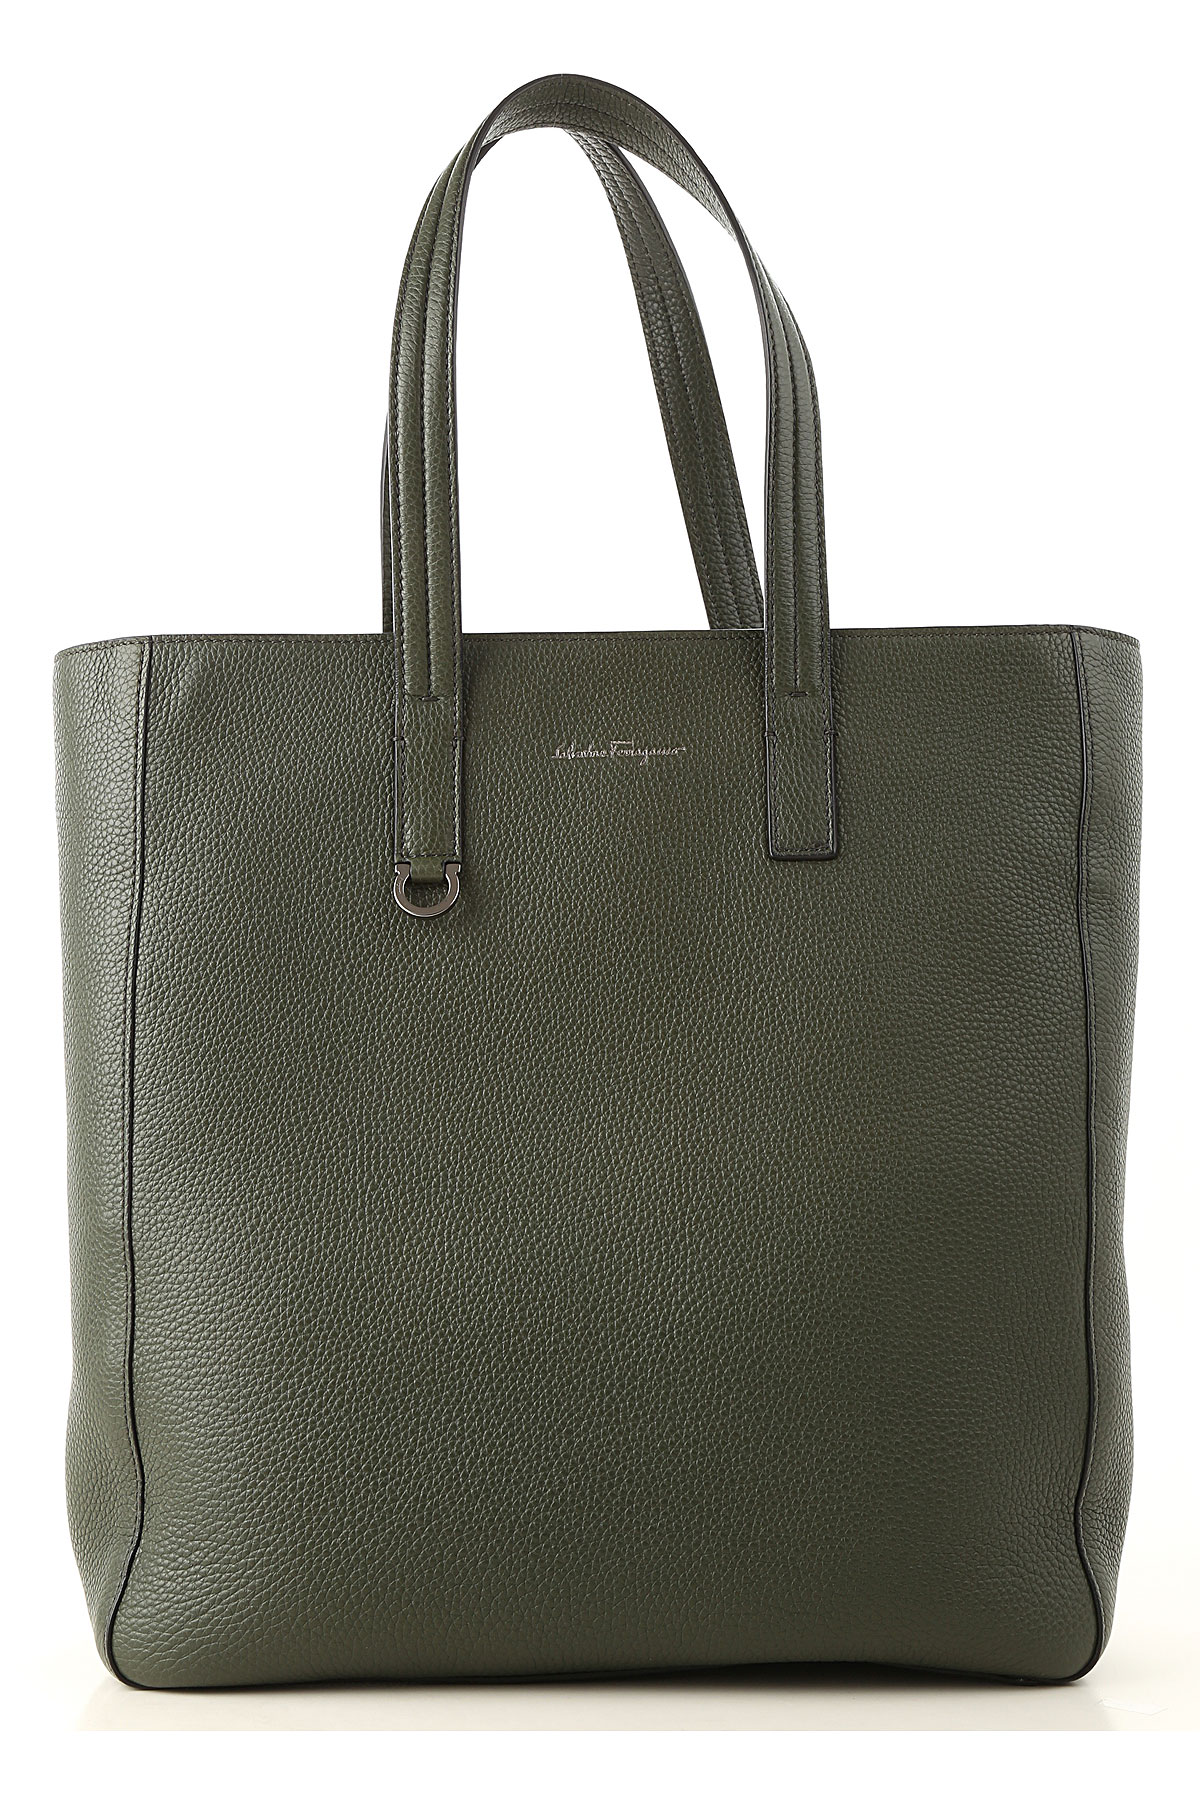 Image of Salvatore Ferragamo Totes, Green, Leather, 2017